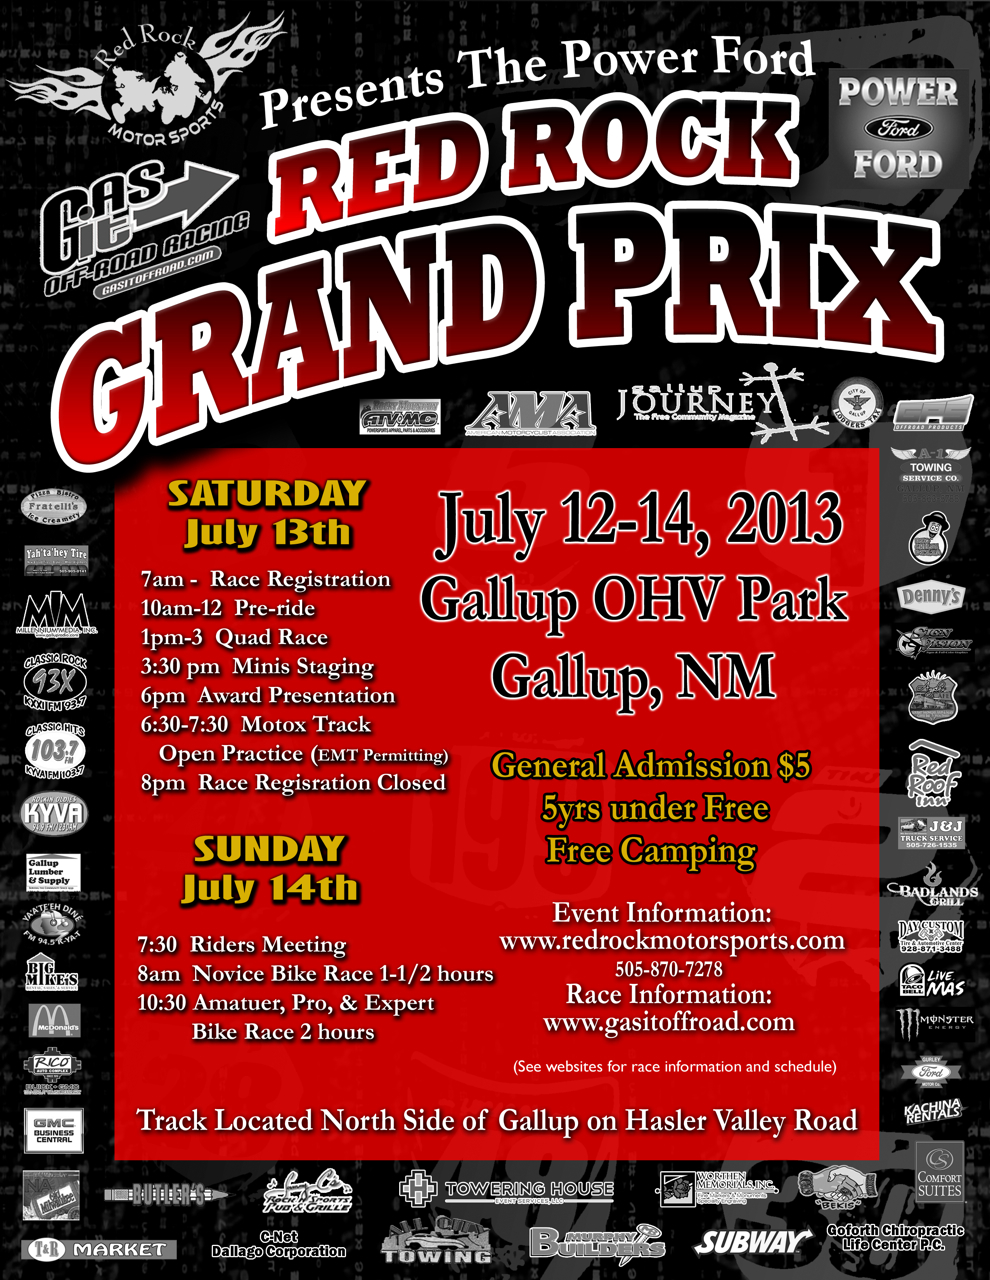 Red Rock Grand Prix Coming in July!